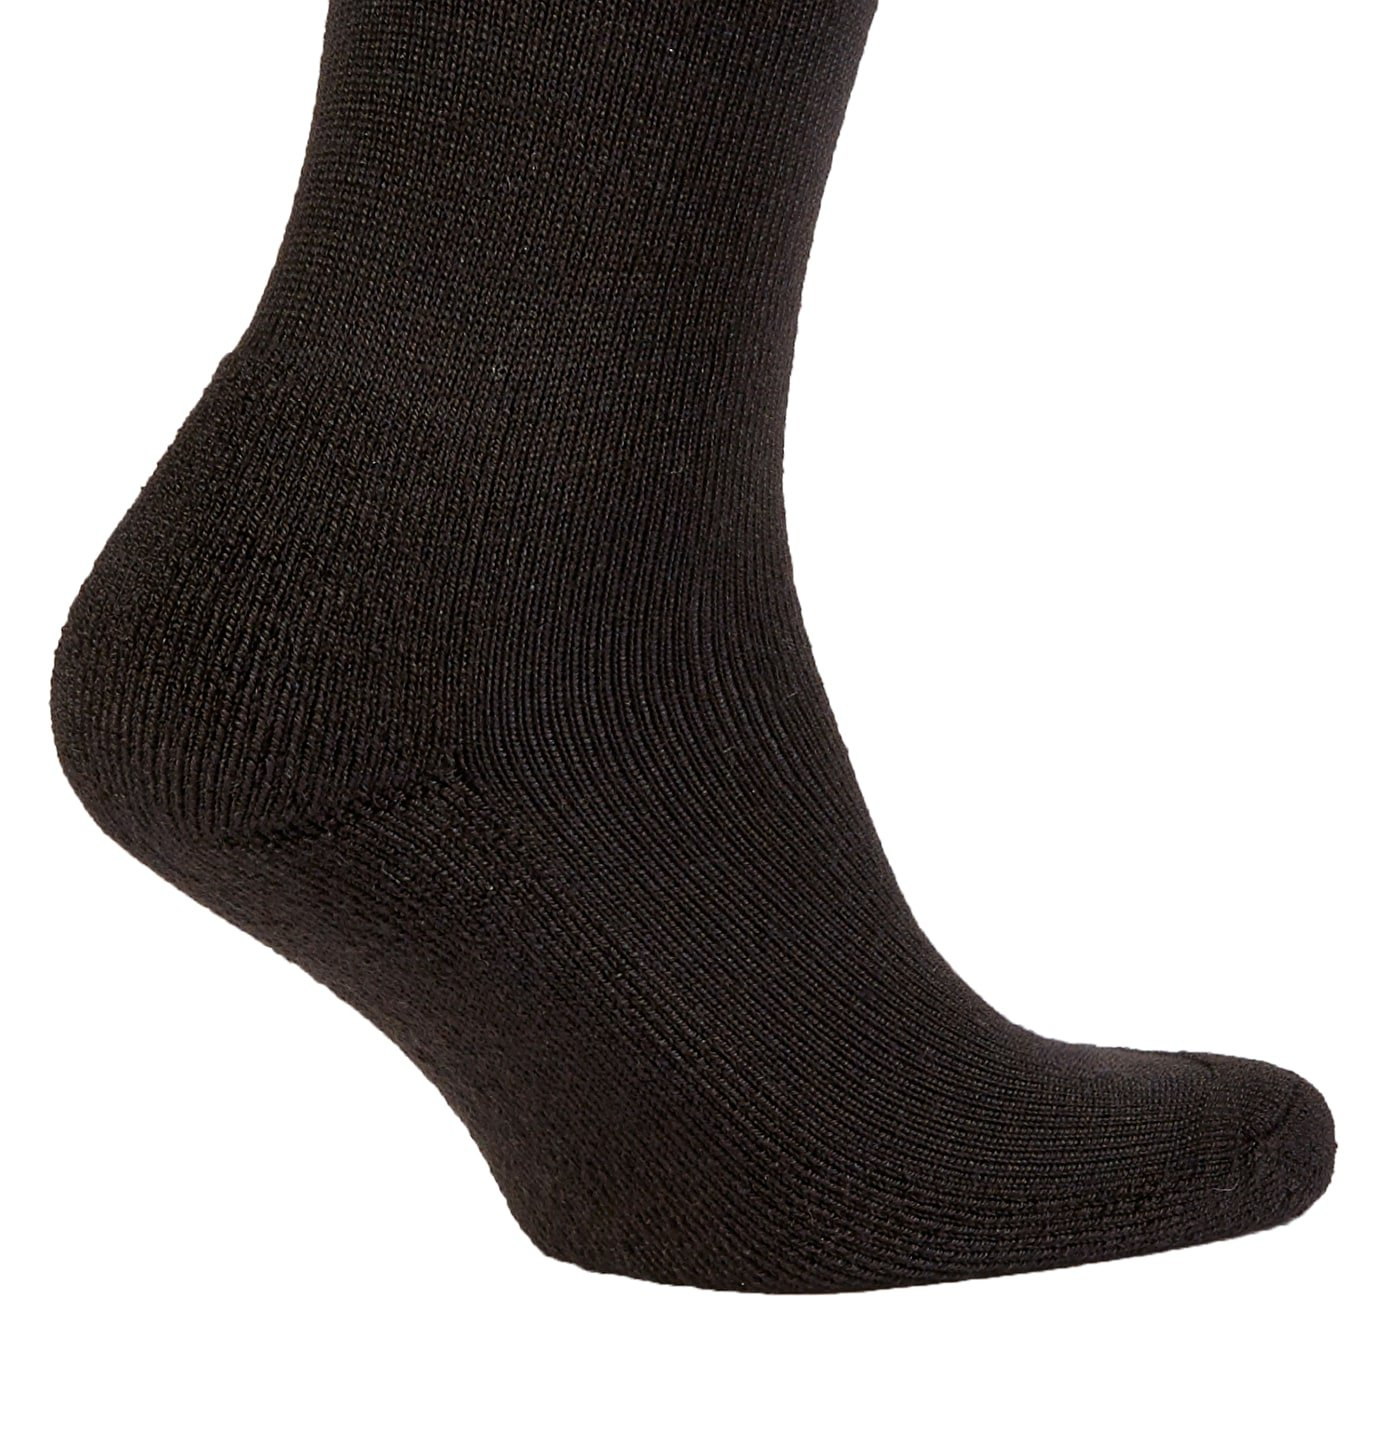 Seal Skinz Thermal Liner Calcetines, Unisex Adulto: Amazon.es: Deportes y aire libre